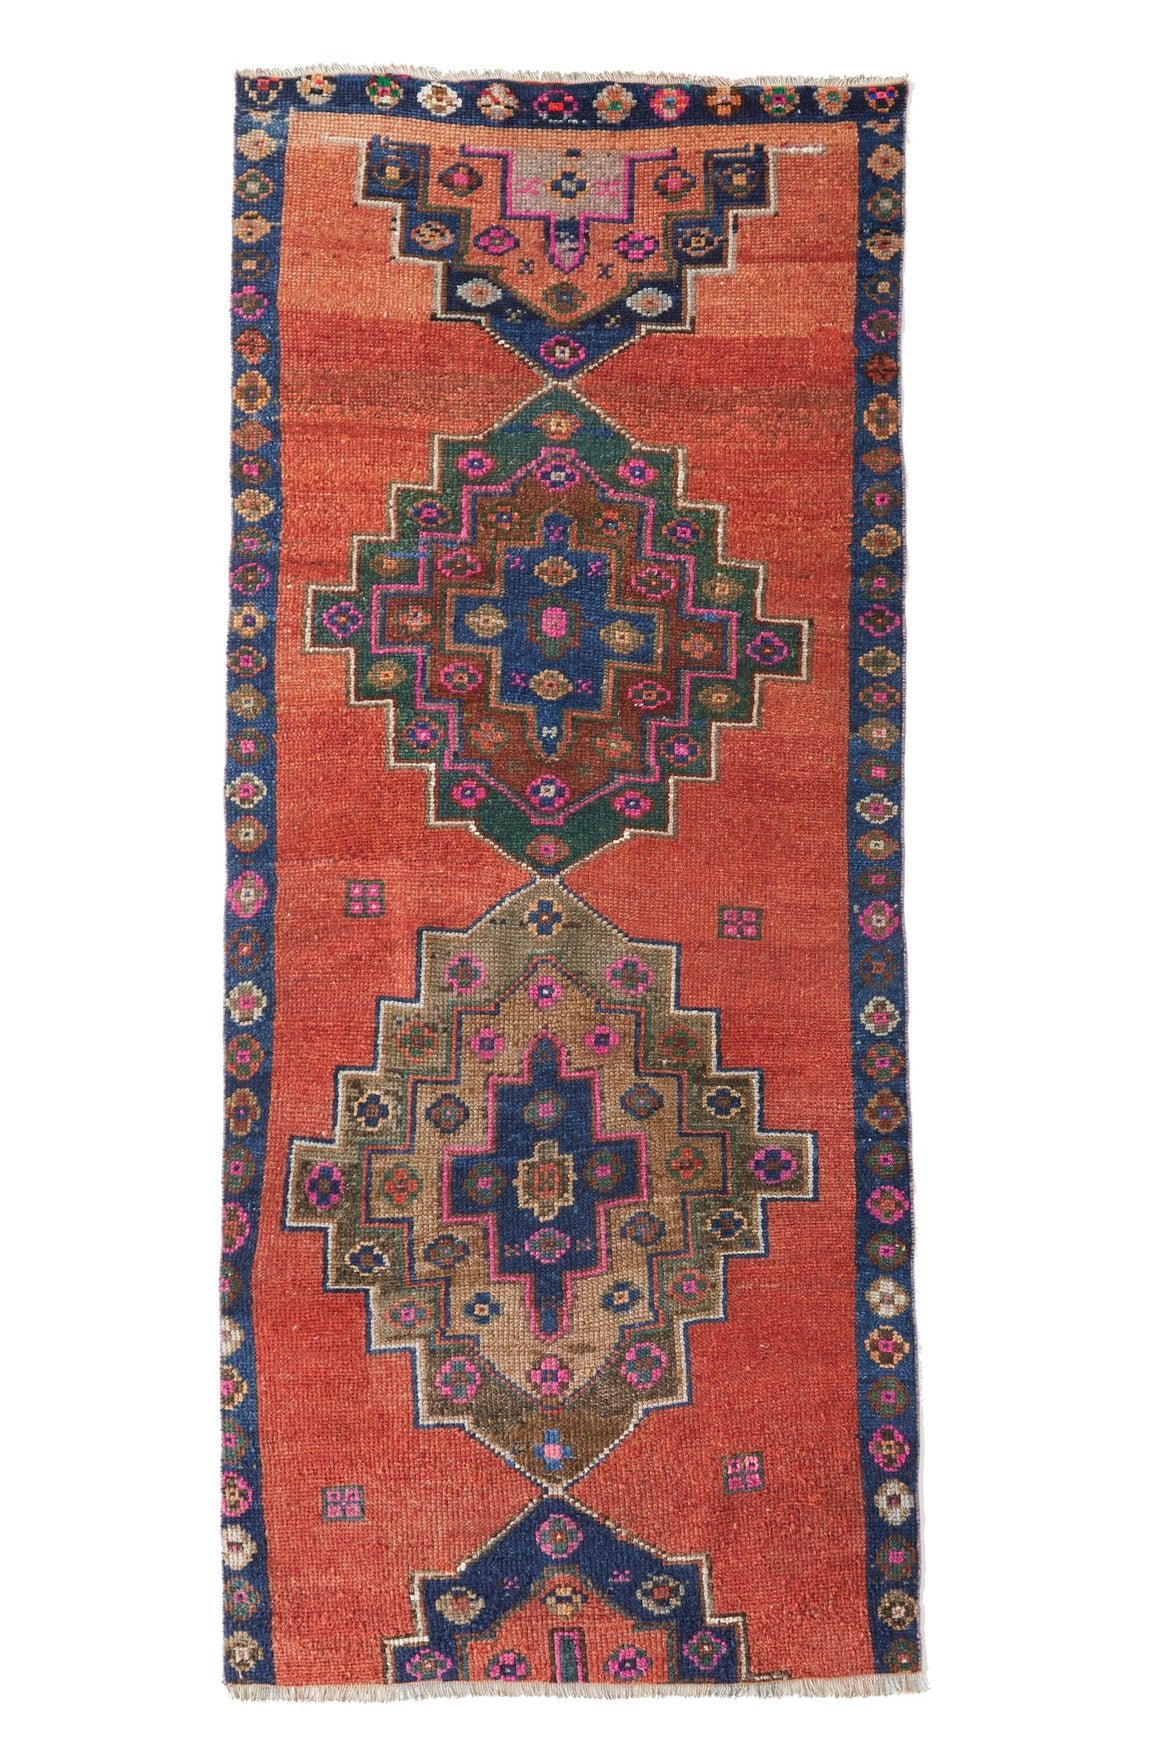 'Blaze' Turkish Vintage Rug - 3'7'' x 8'4'' - Canary Lane - Curated Textiles